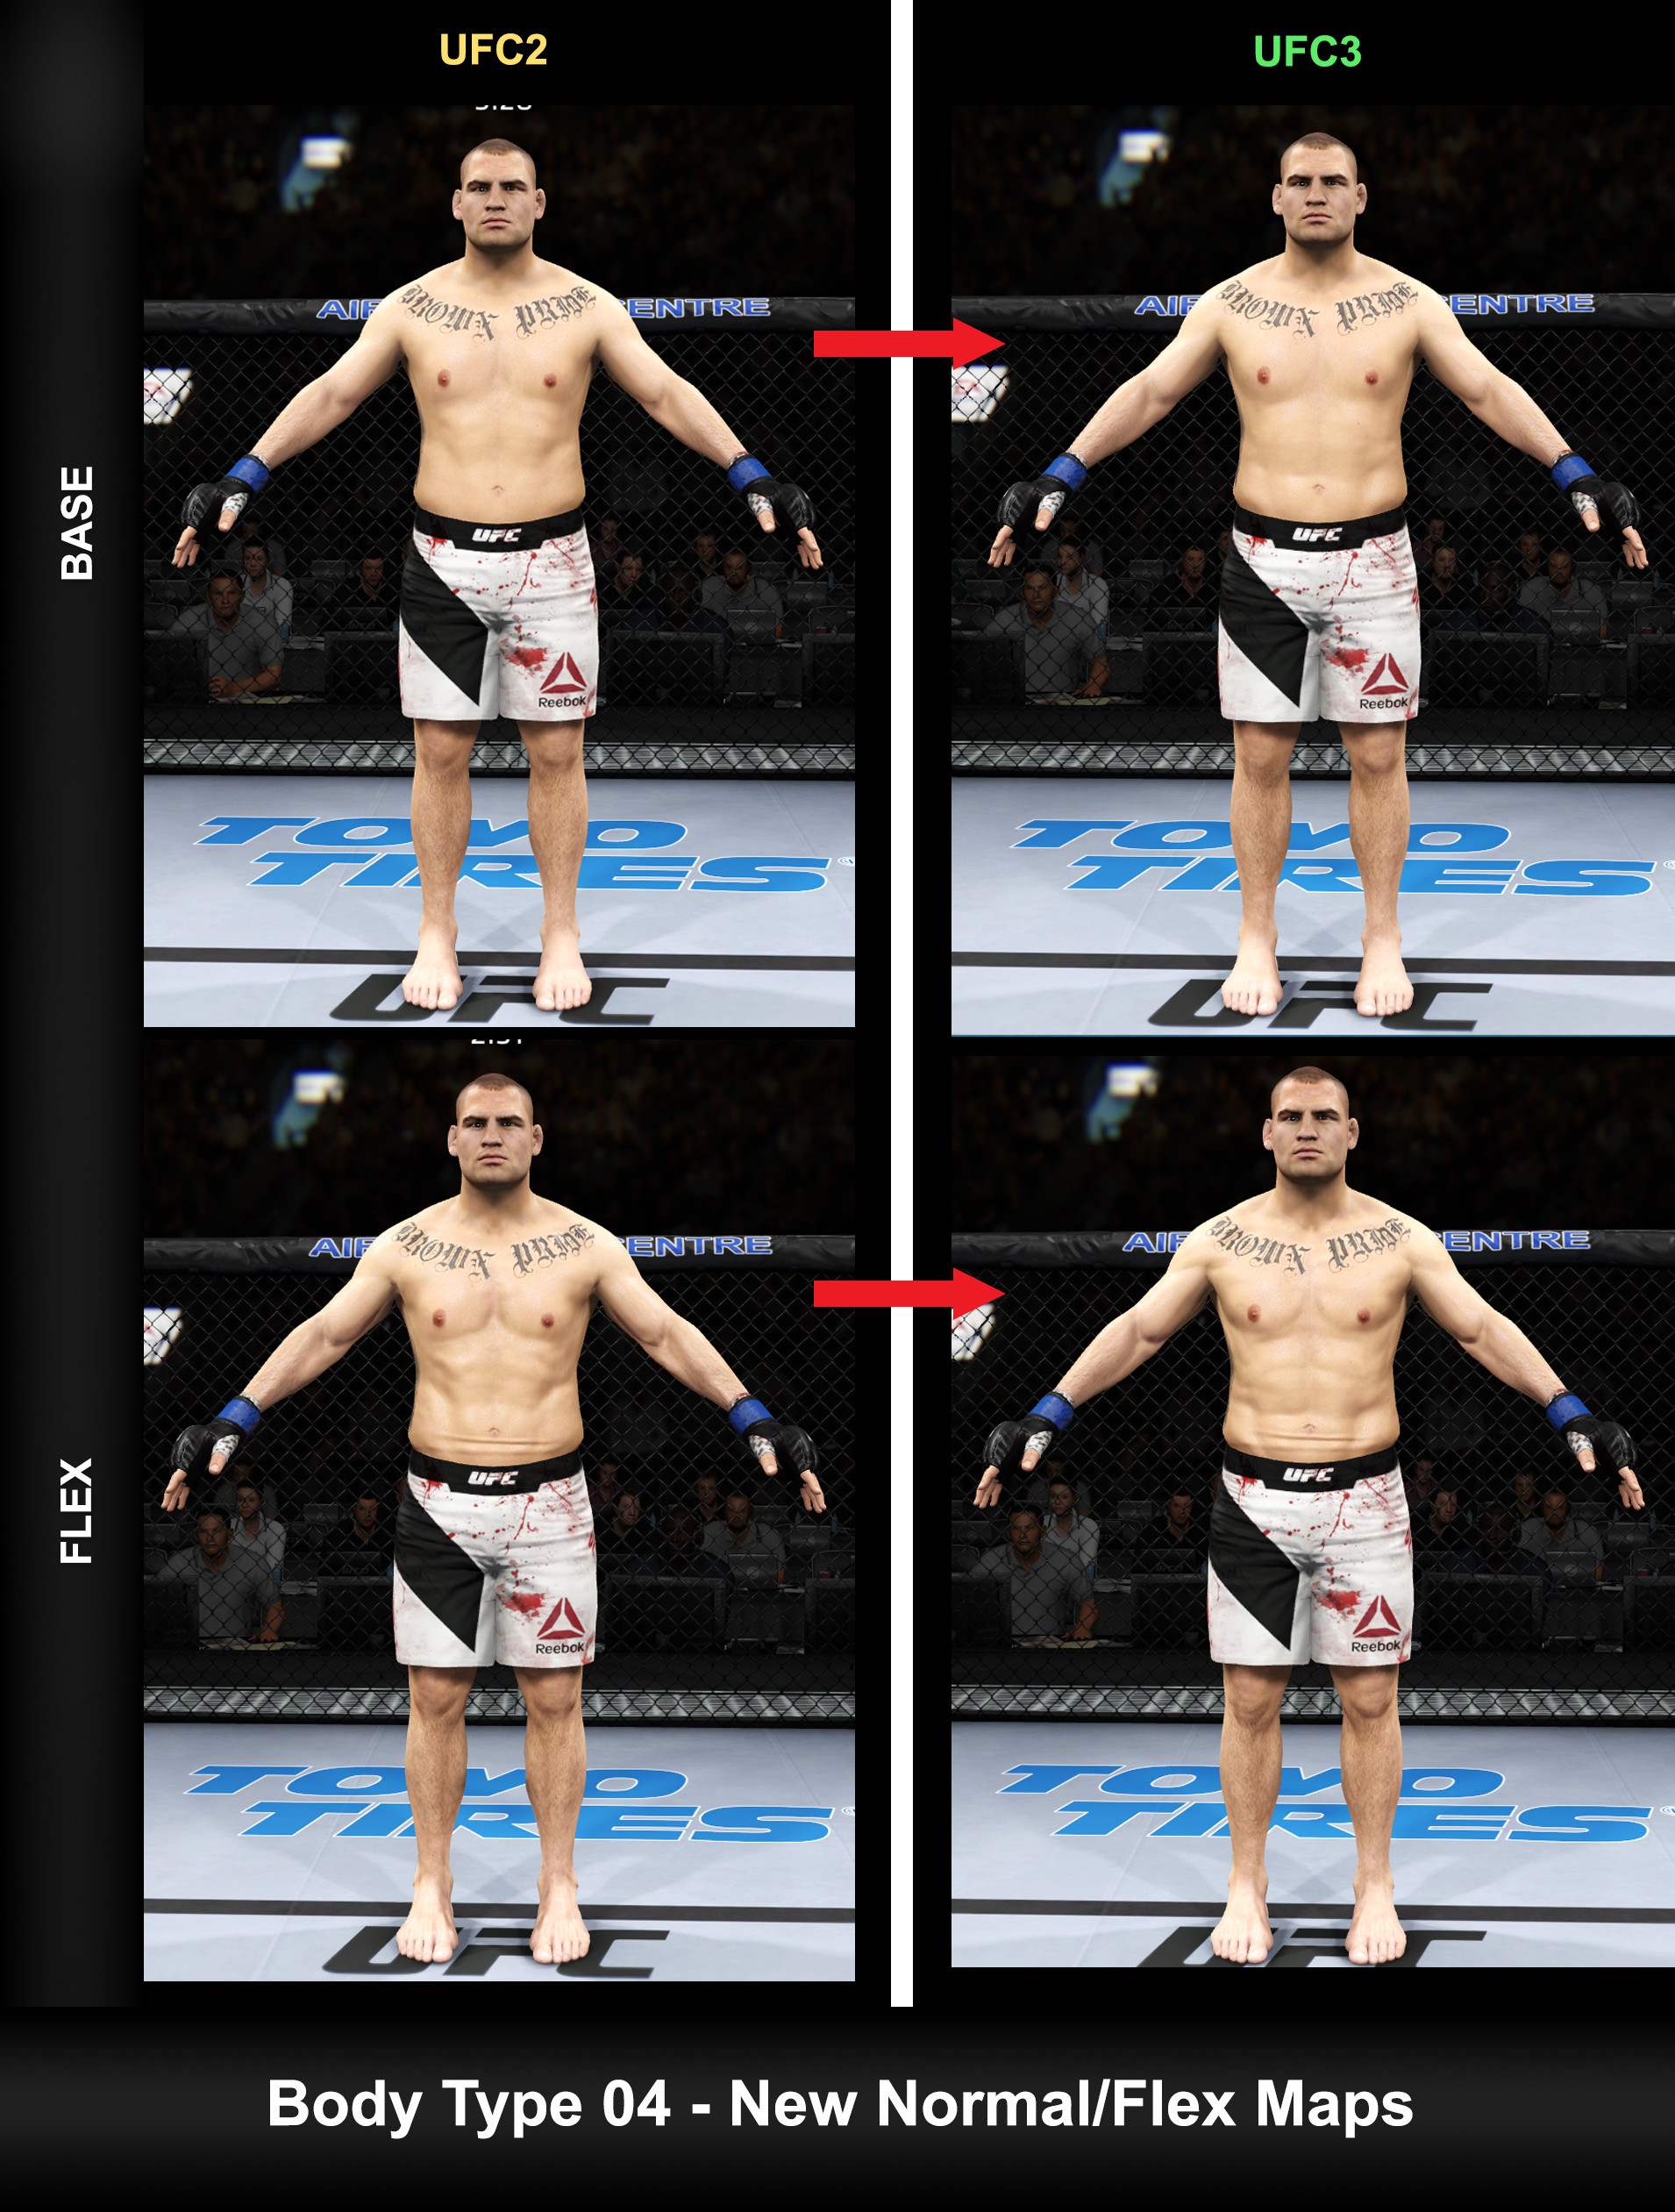 Fabricio rezende ufc3 body type 04 in game